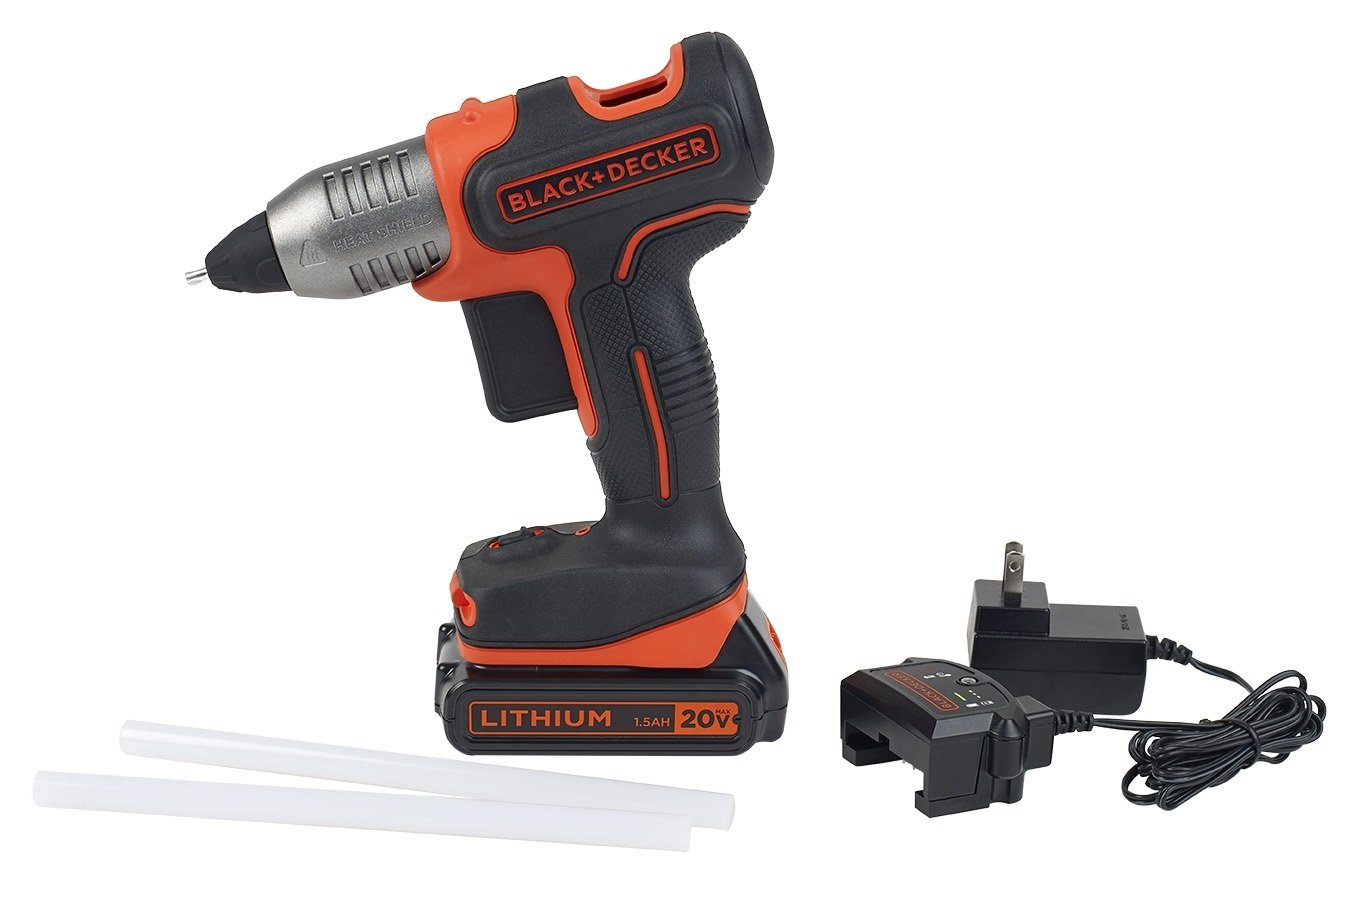 Black & Decker 20v Cordless Glue Gun System